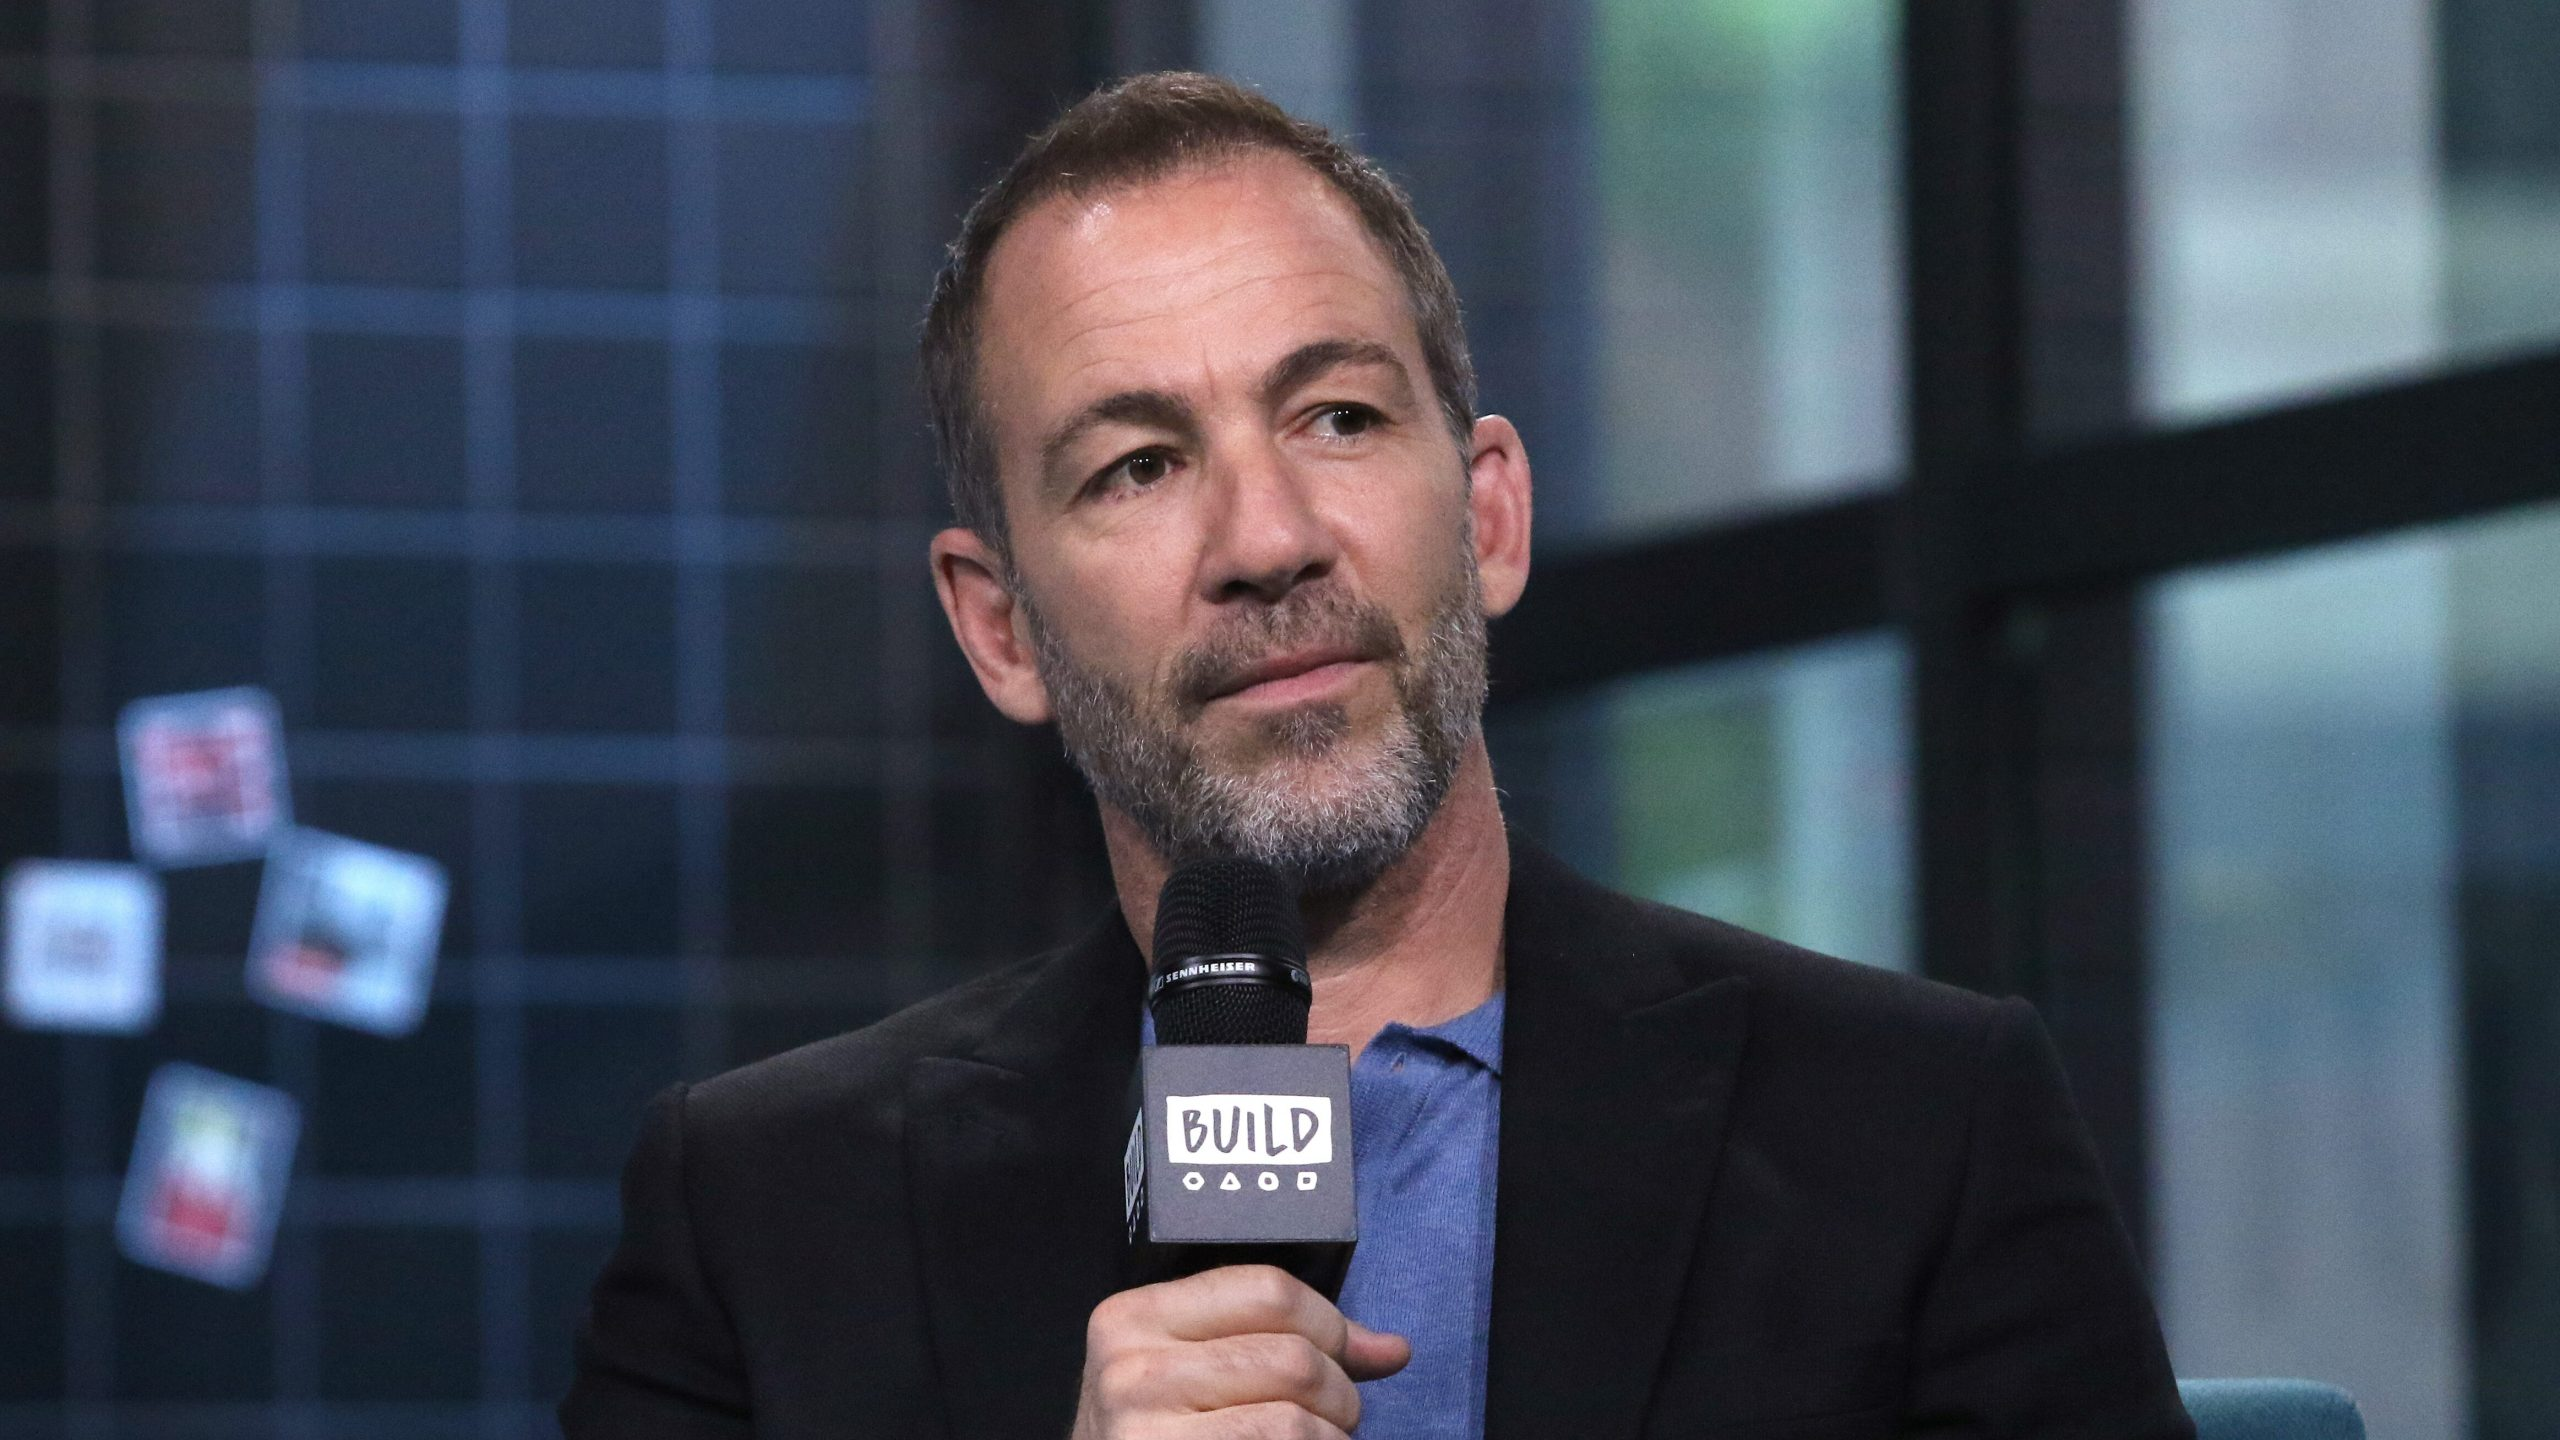 Bryan Callen publicizes 'depart of absence' from podcast amid sexual misconduct allegations